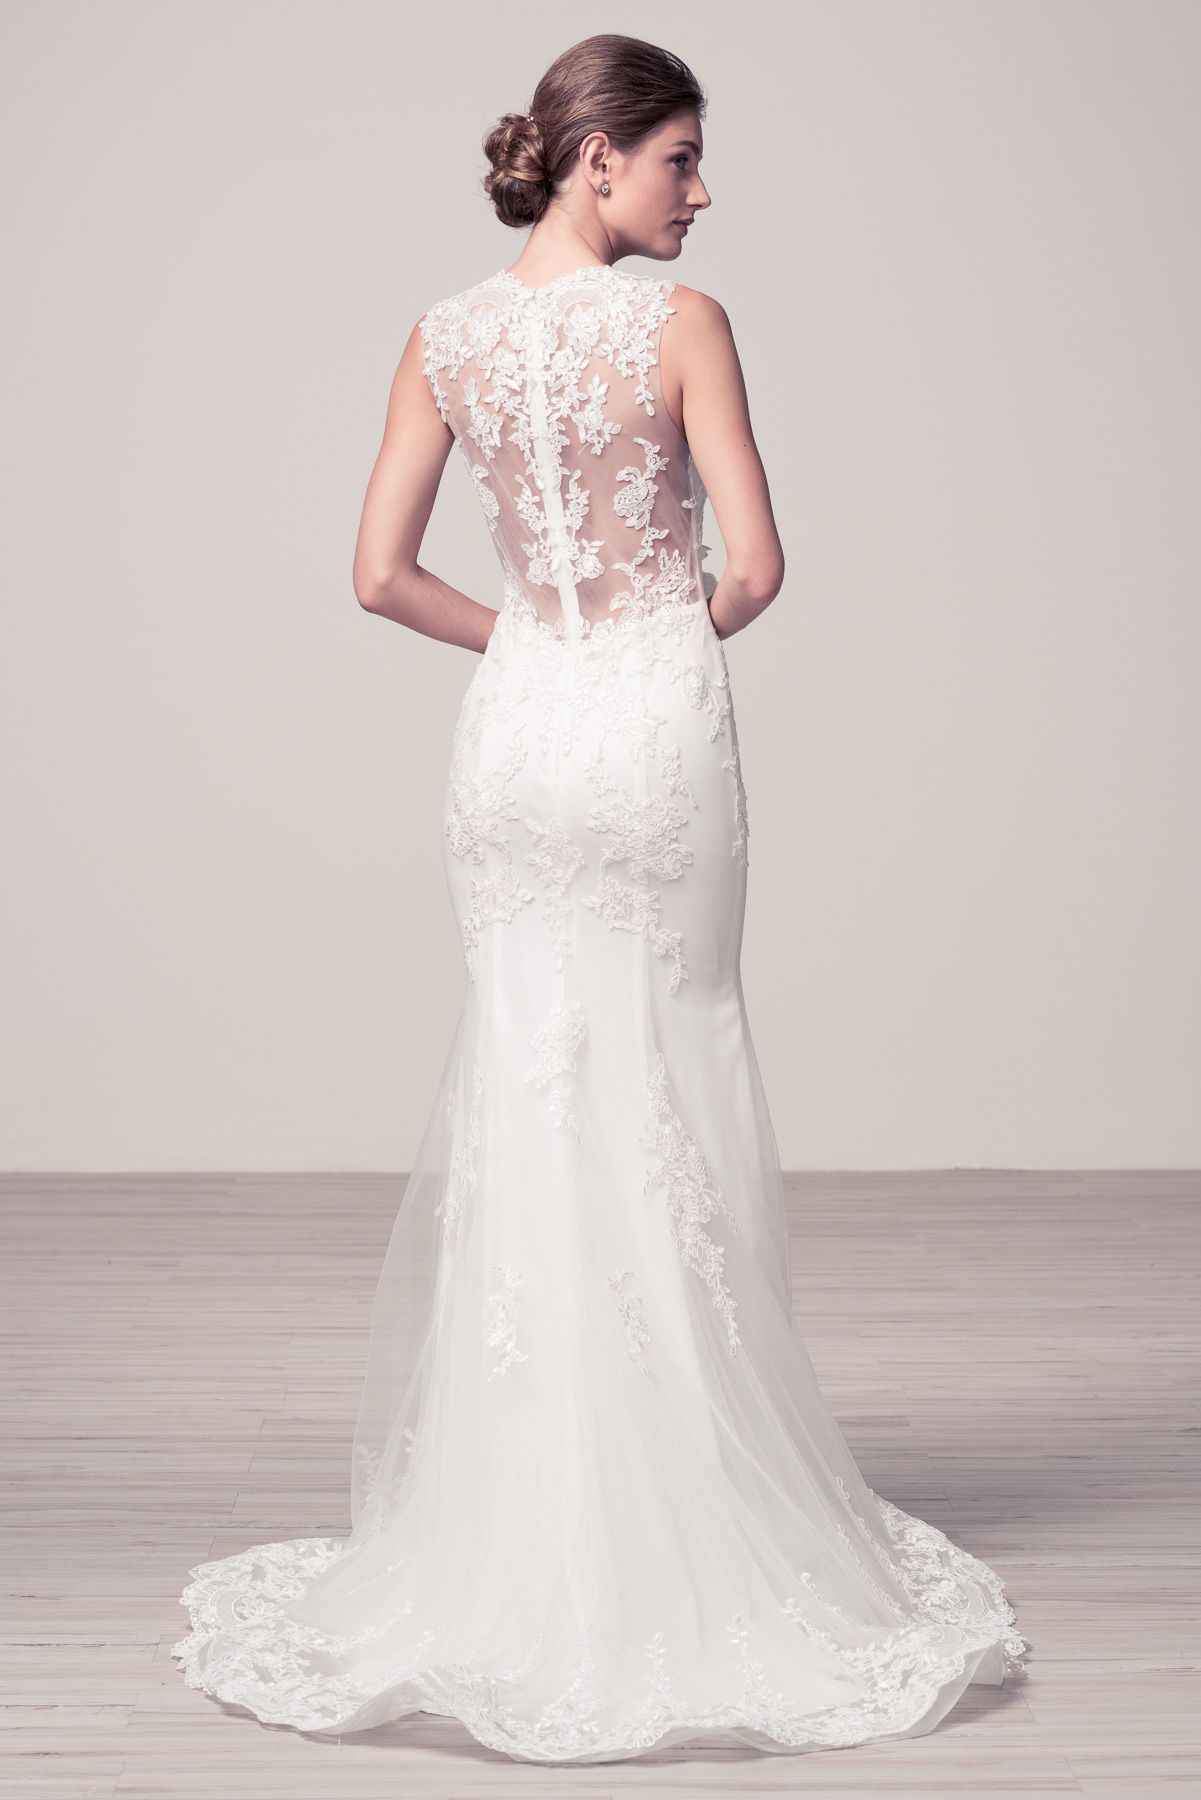 Chinese wedding dress rental los angeles  labridal  Bela Bridal  Pinterest  High level Gowns and